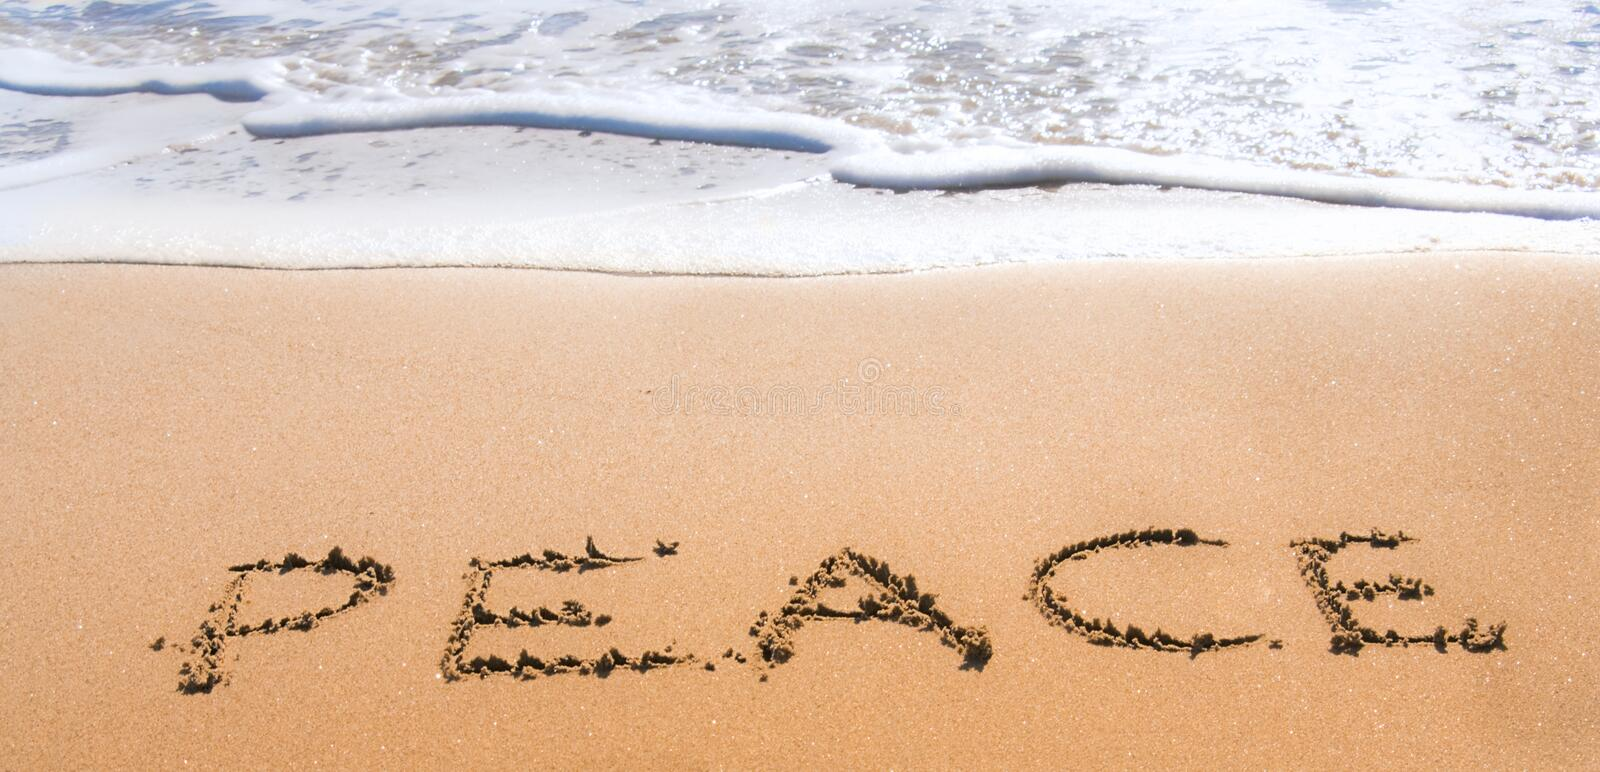 Peace written in sand on beach royalty free stock photography